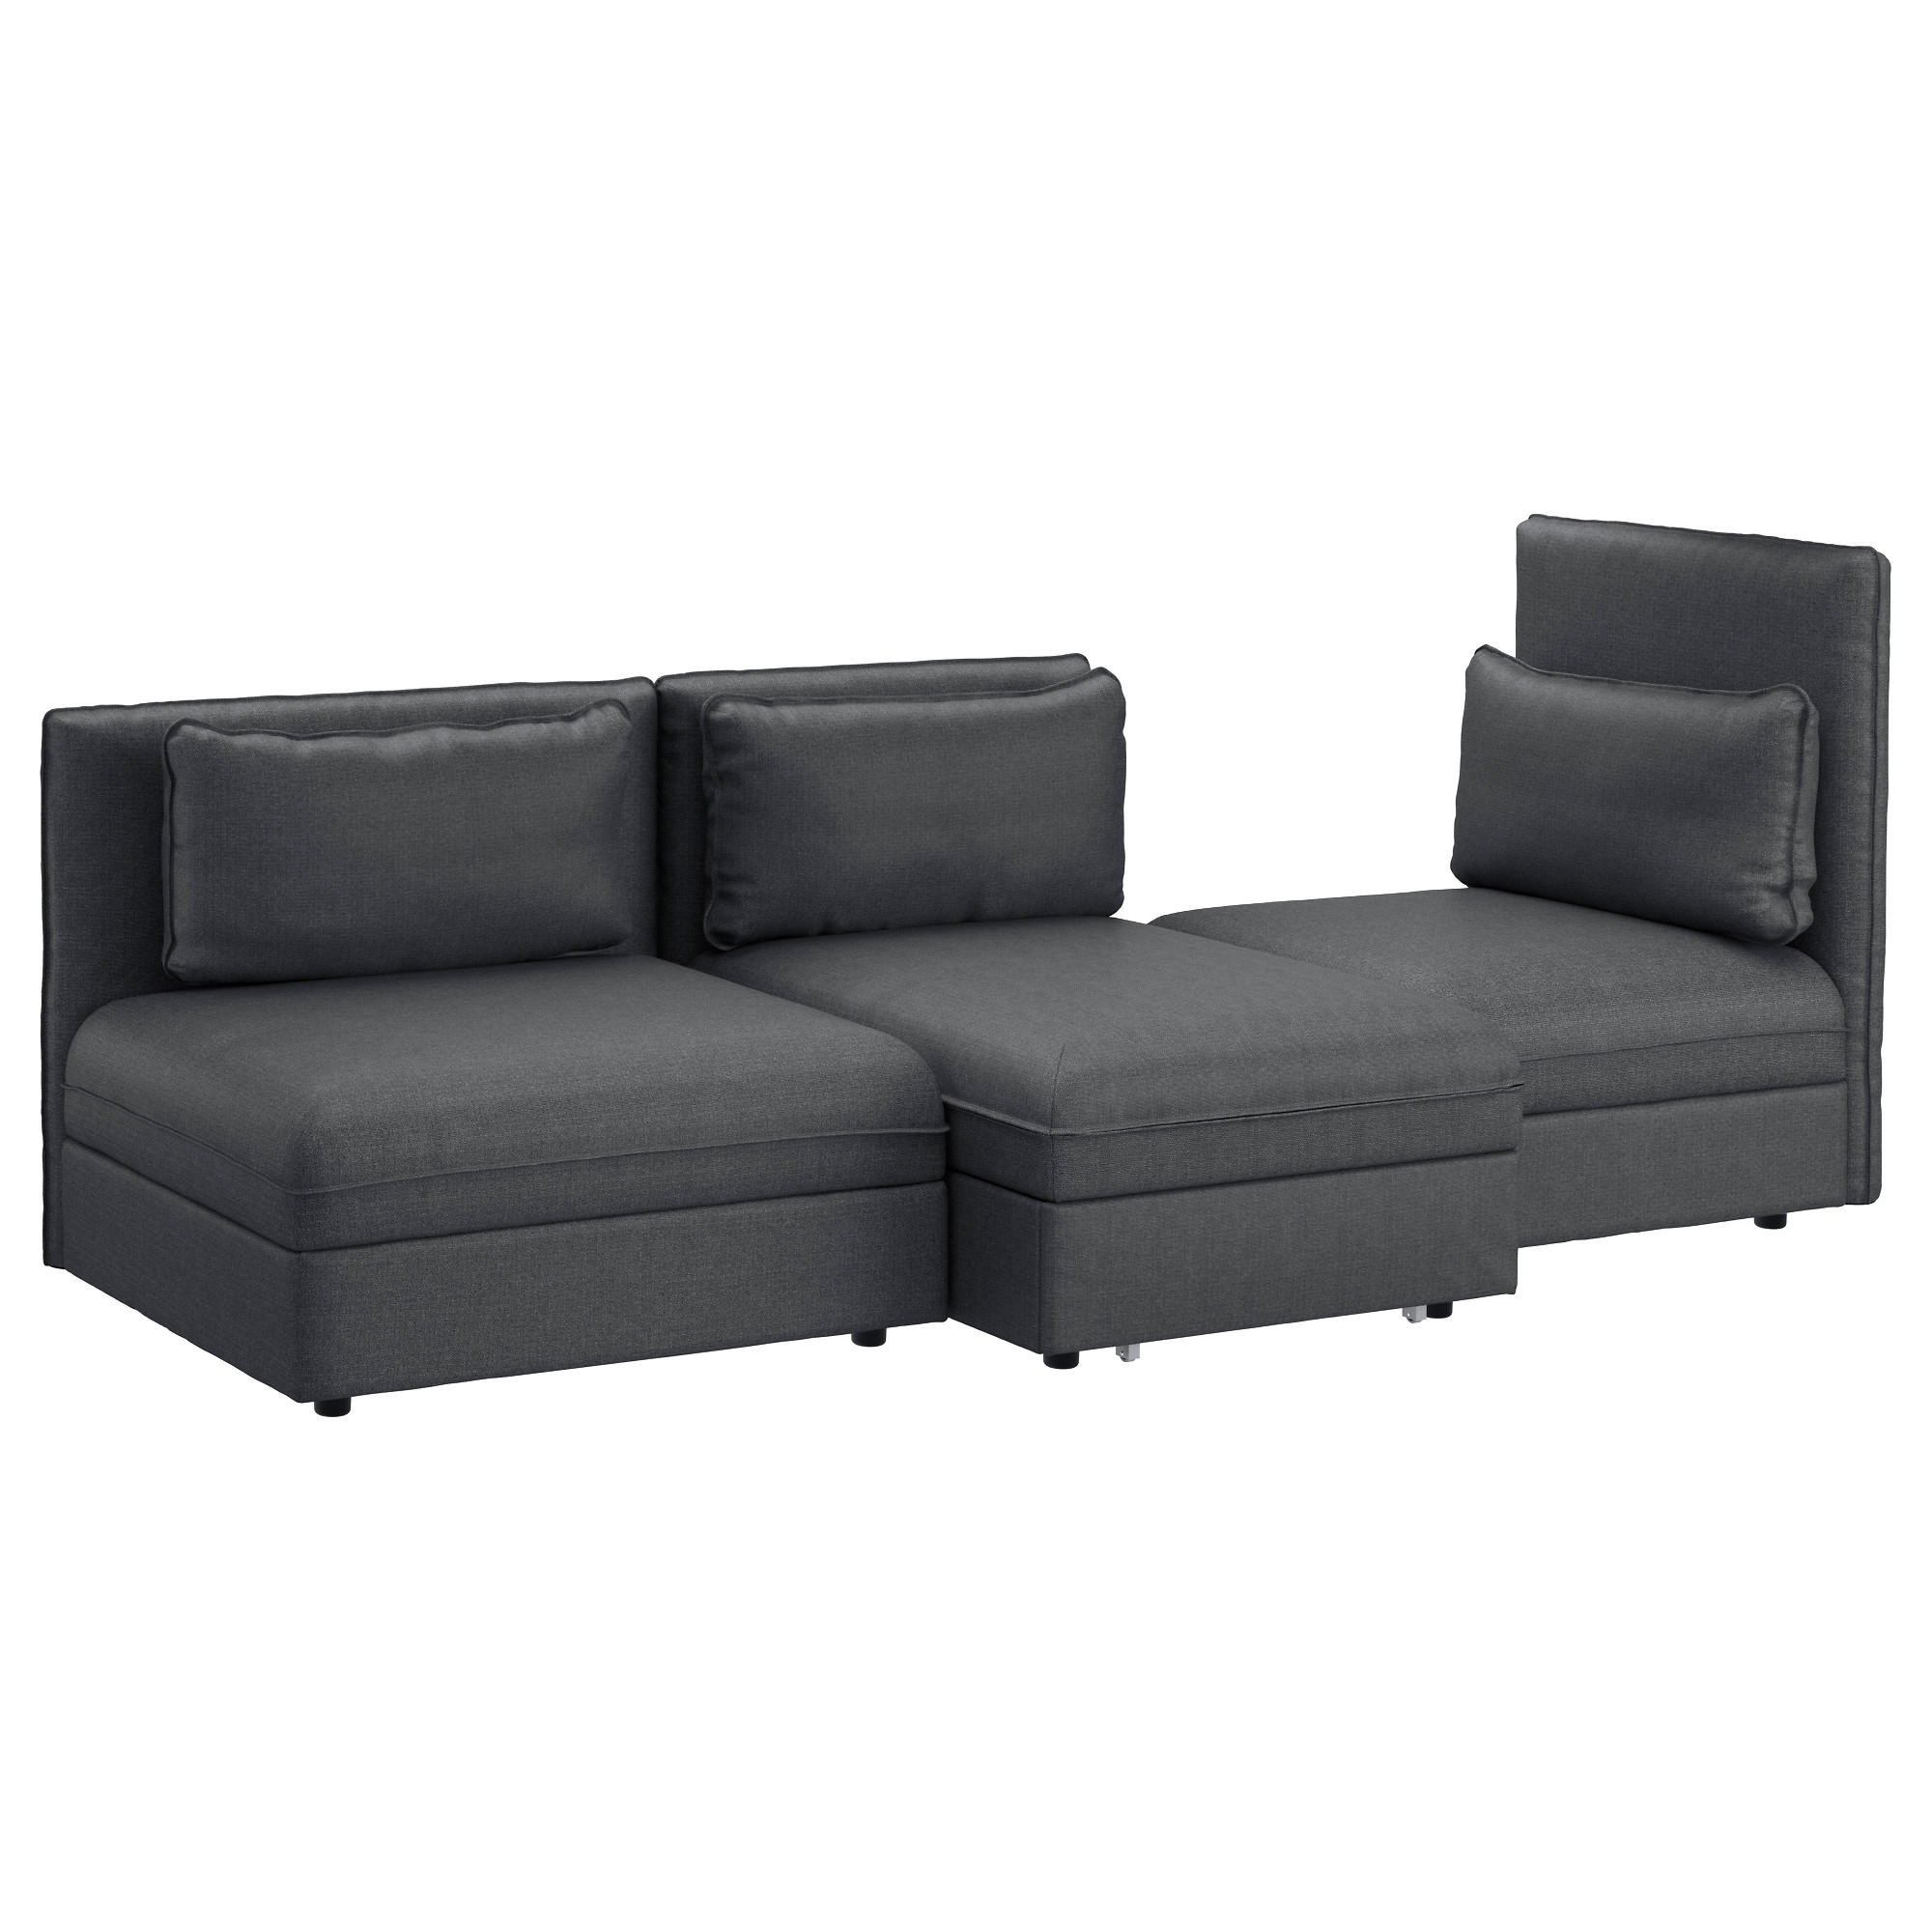 Ikea Sectional Sleeper Sofas Within Famous Vallentuna Sleeper Sectional, 3 Seat – Hillared Dark Gray – Ikea (View 19 of 20)